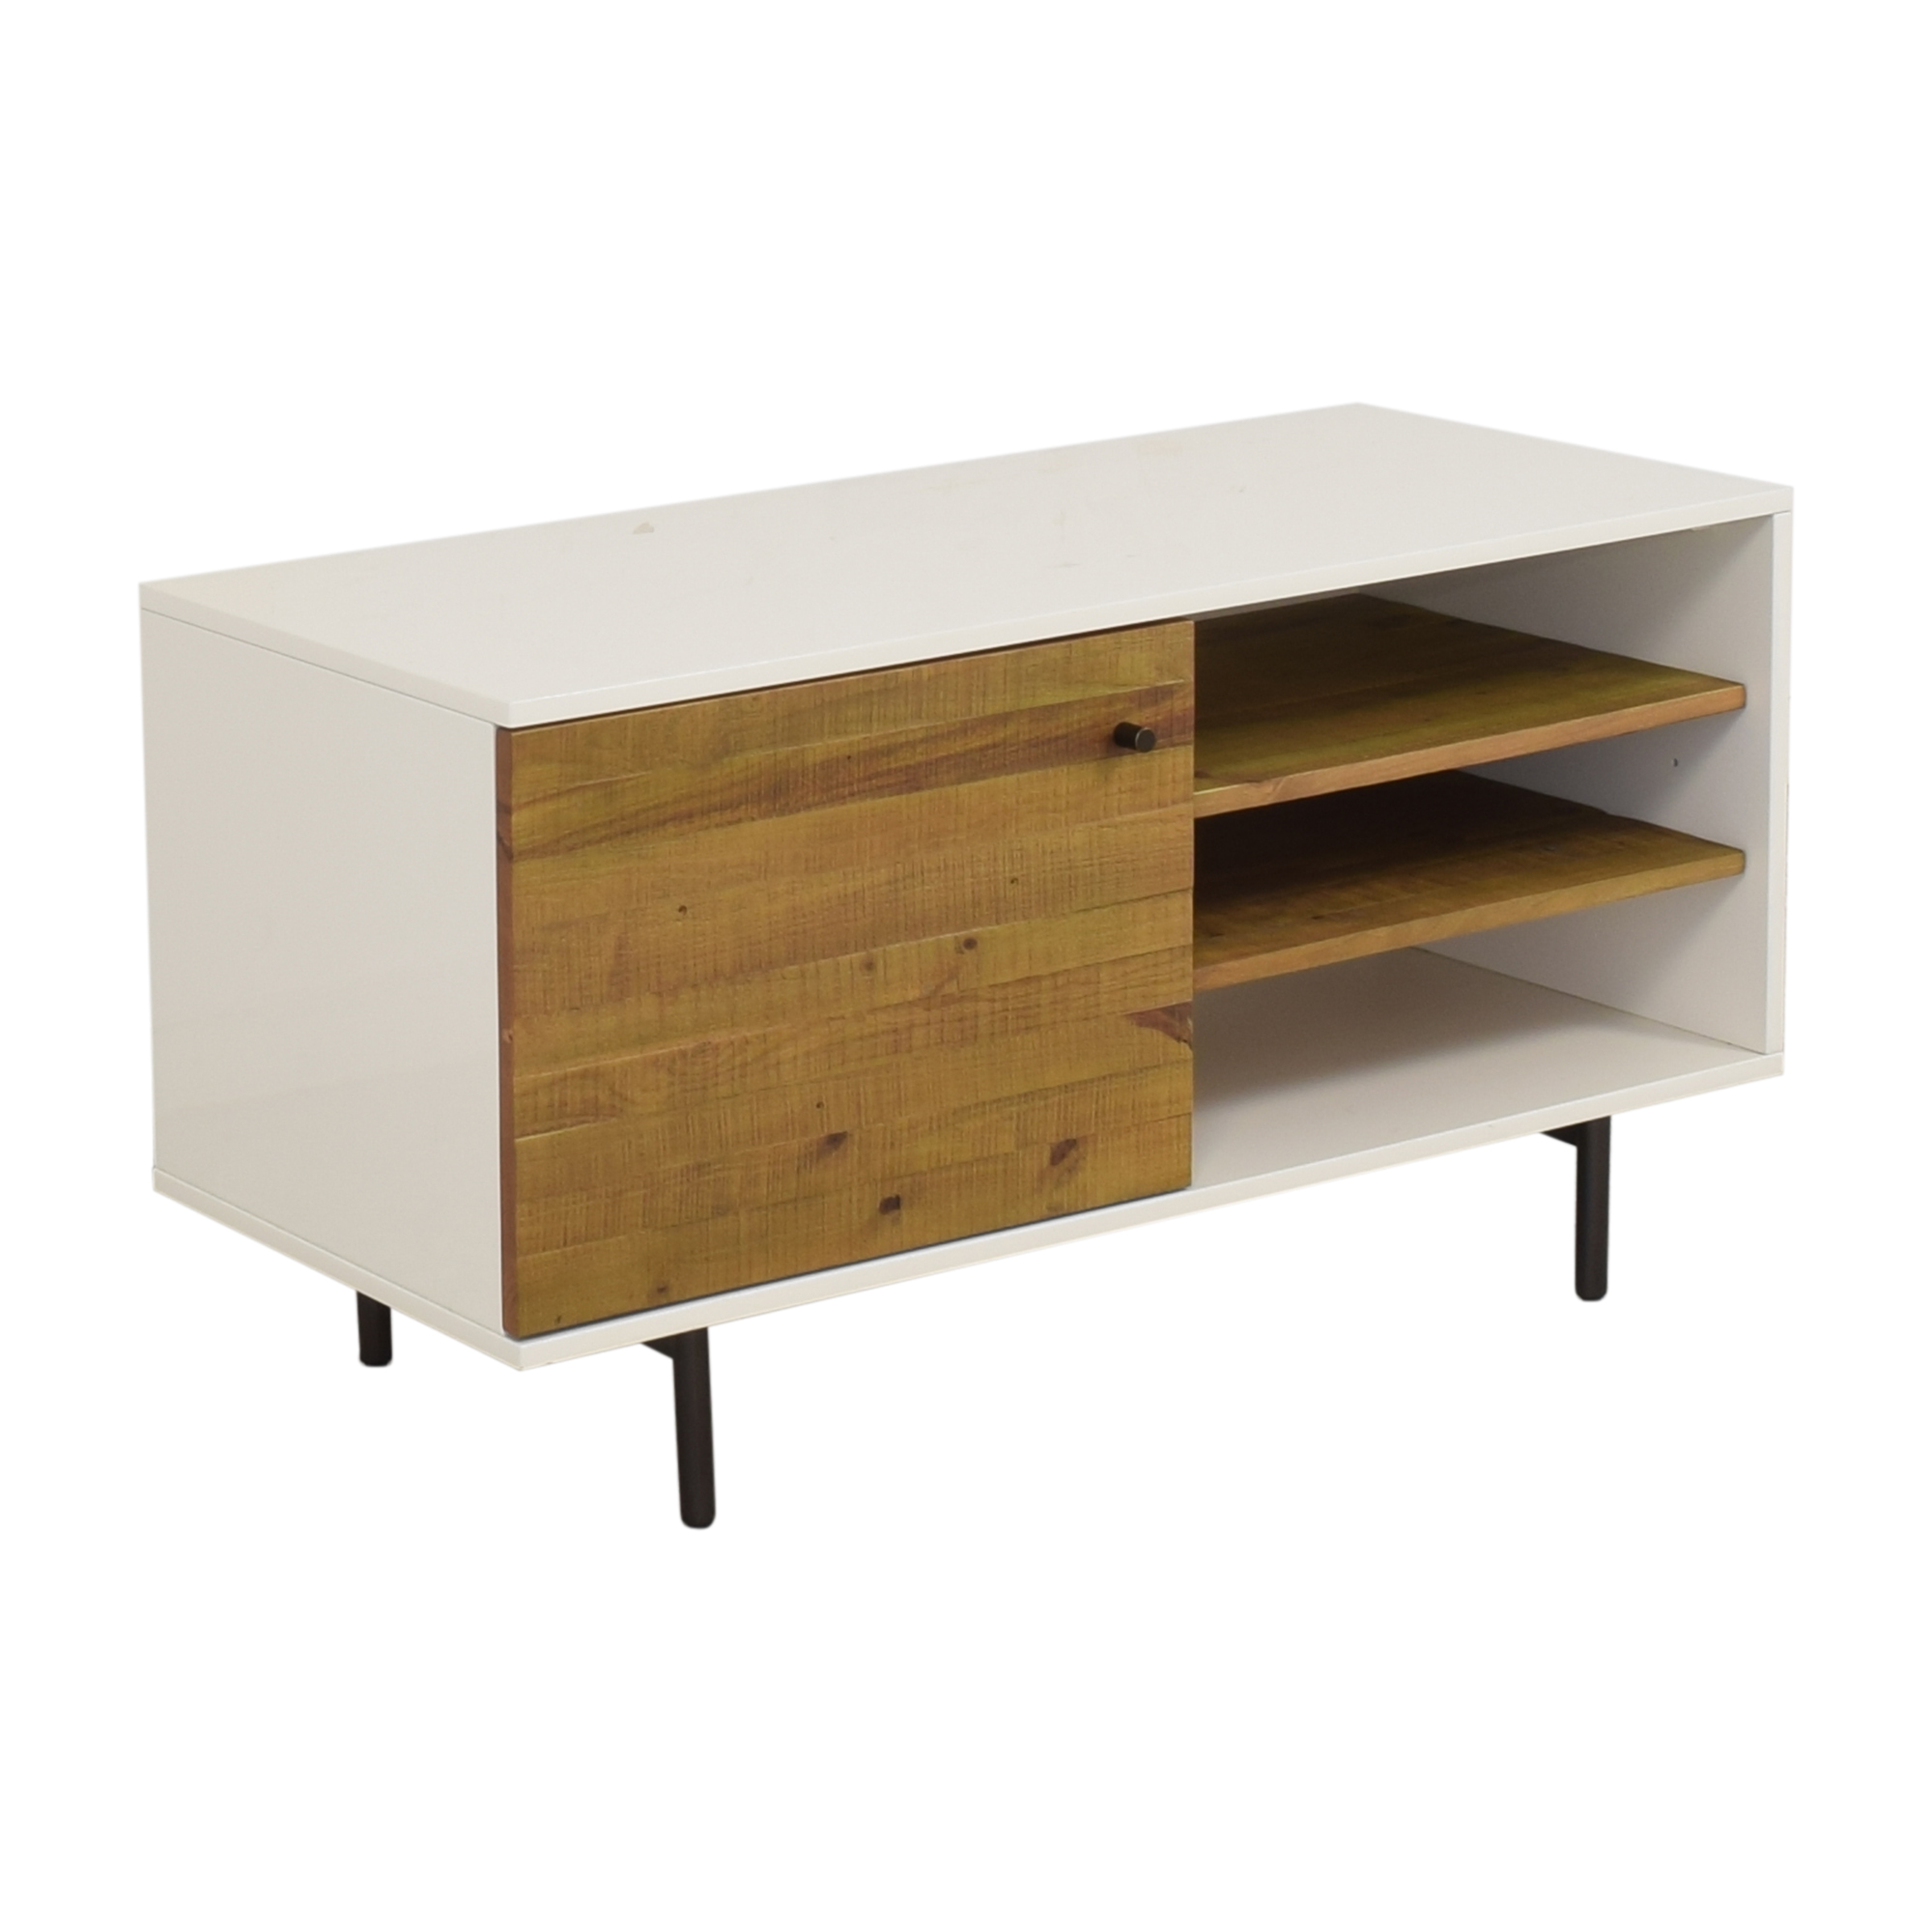 West Elm West Elm Reclaimed Media Console second hand